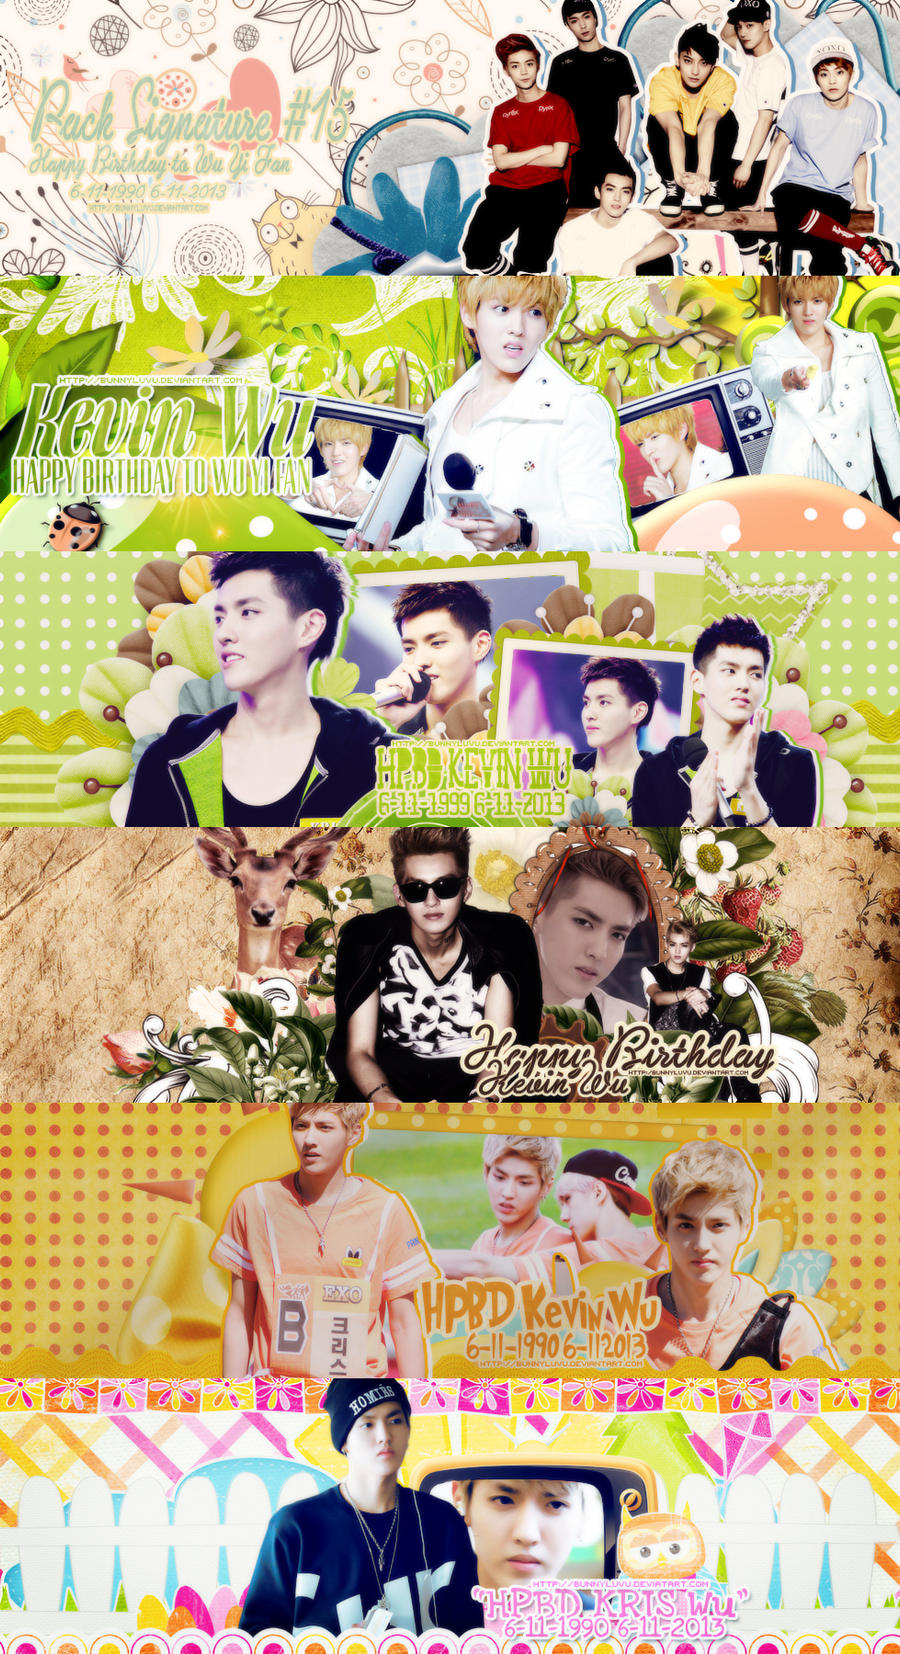 Pack Signature #15 [Only KRIS] HPBD To KRIS by BunnyLuvU